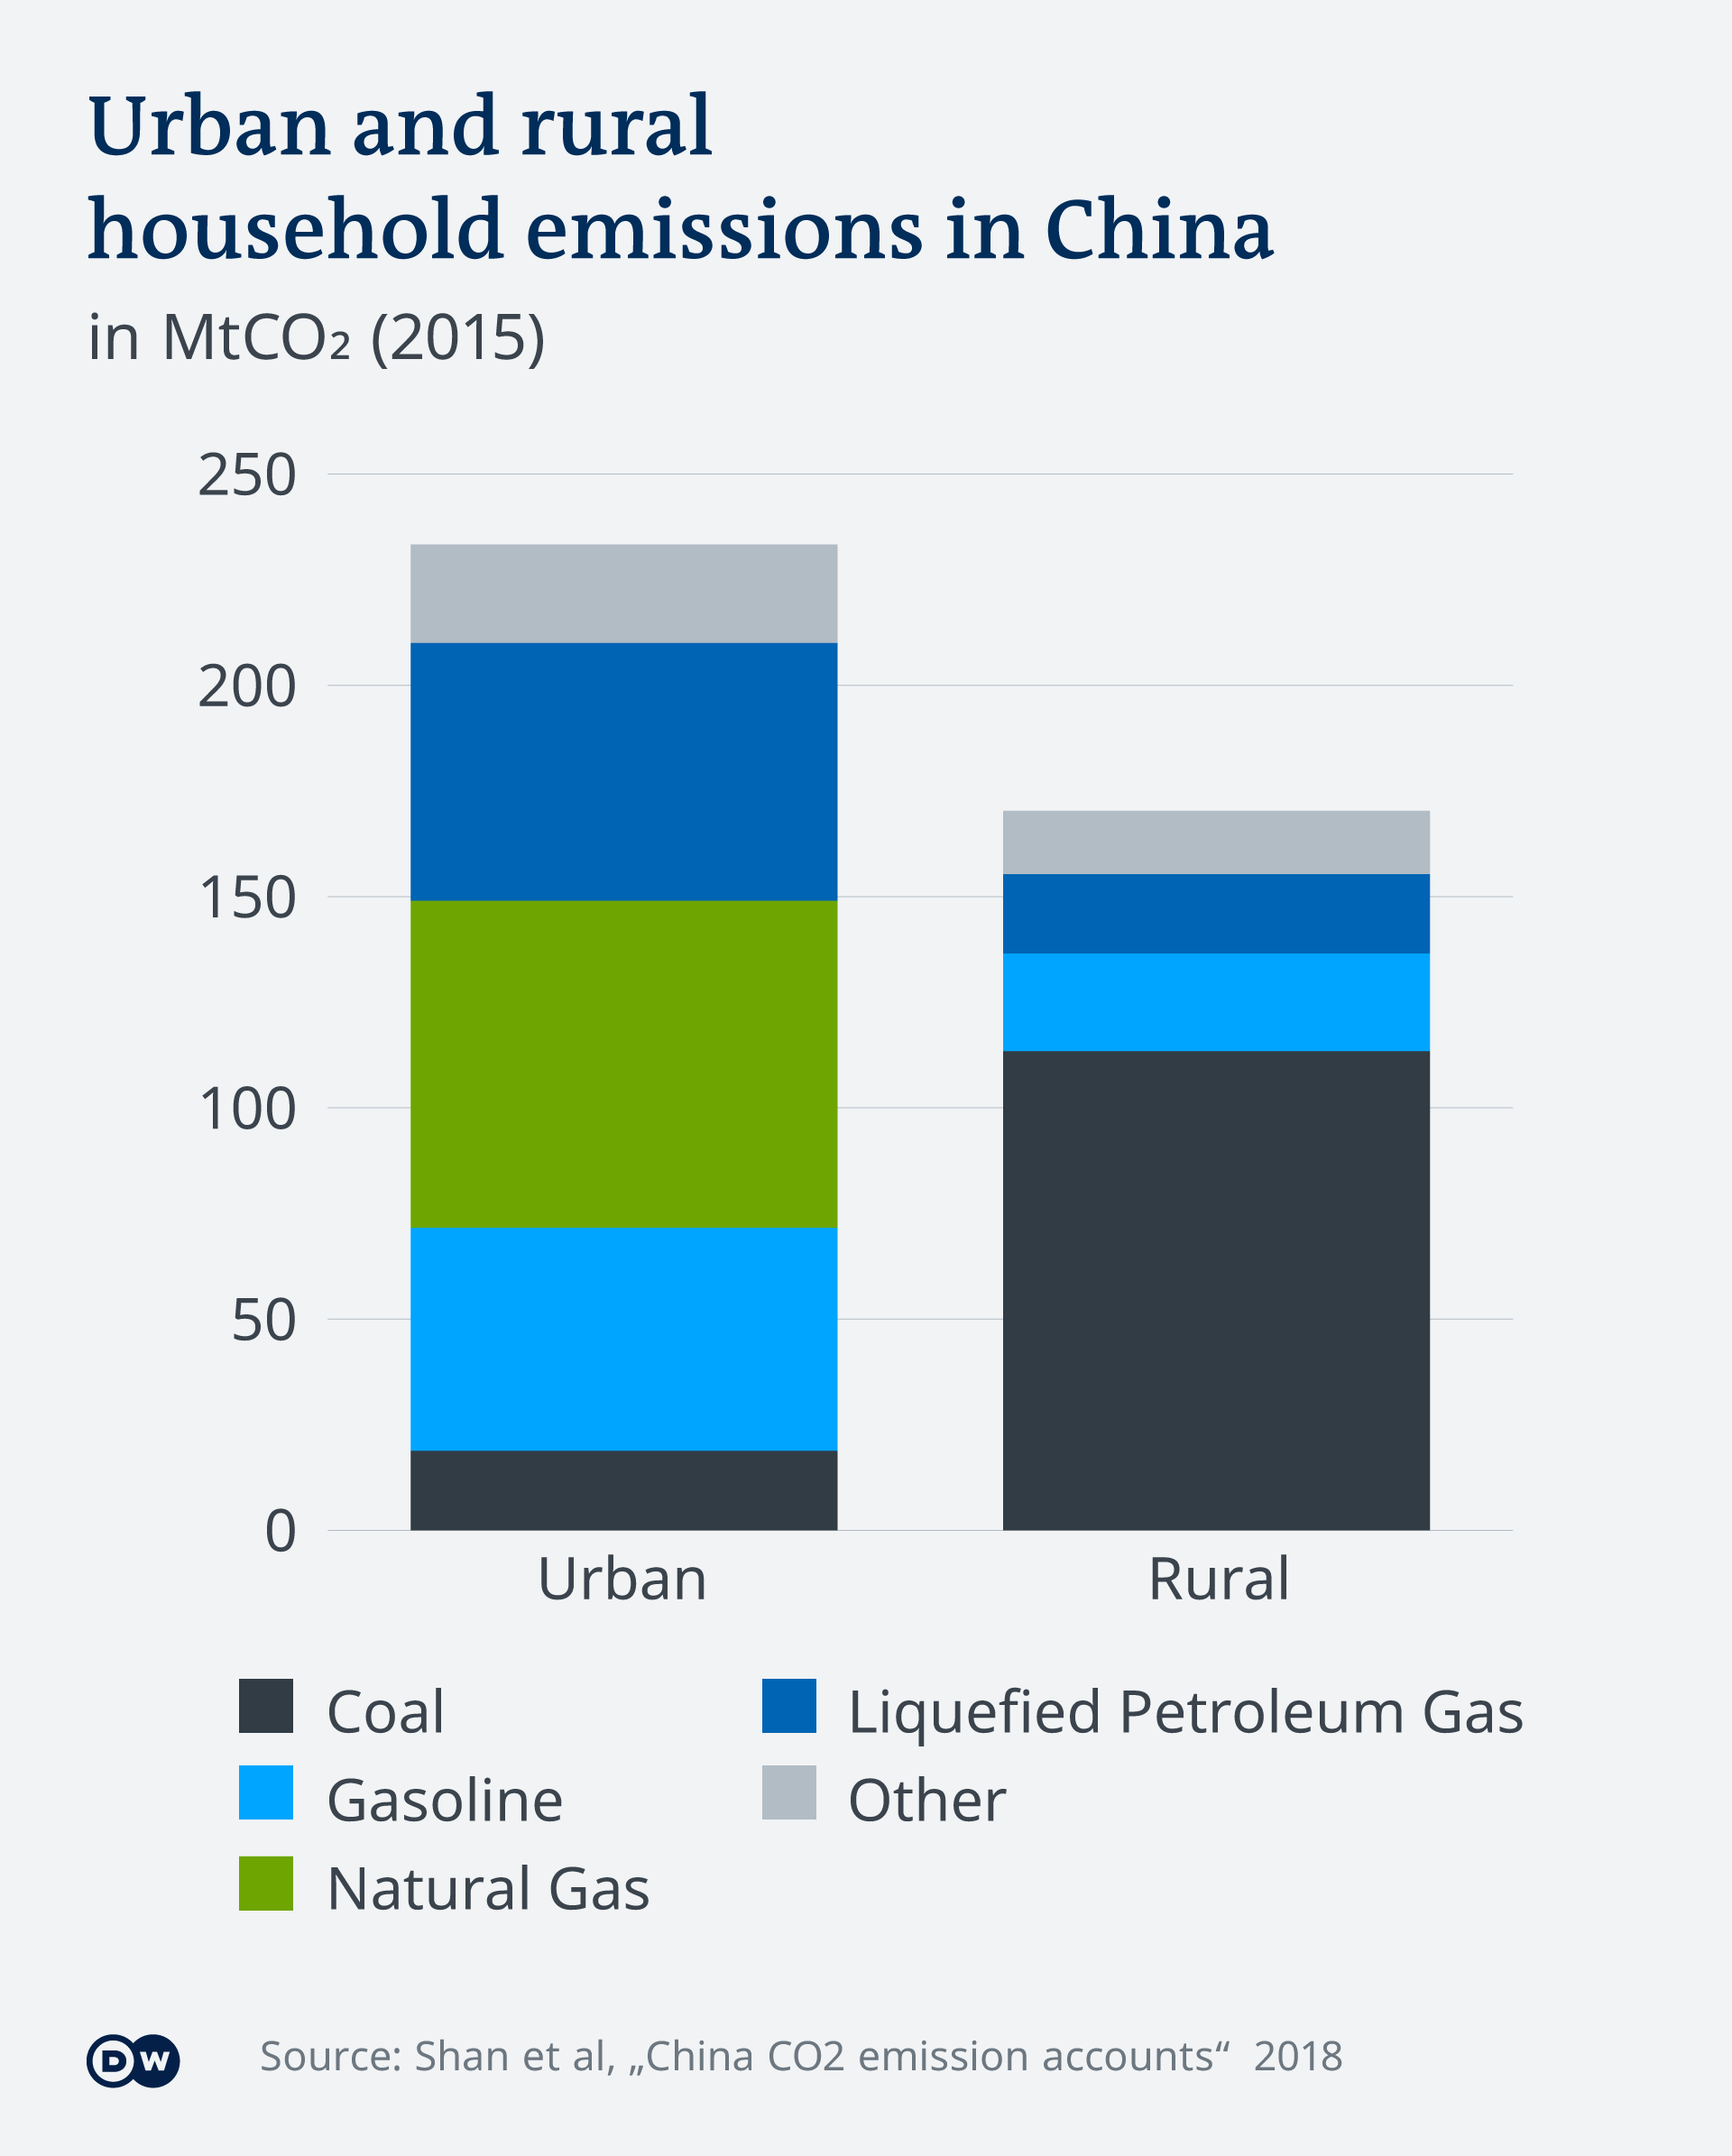 An infographic showing urban and rural carbon emissions in China